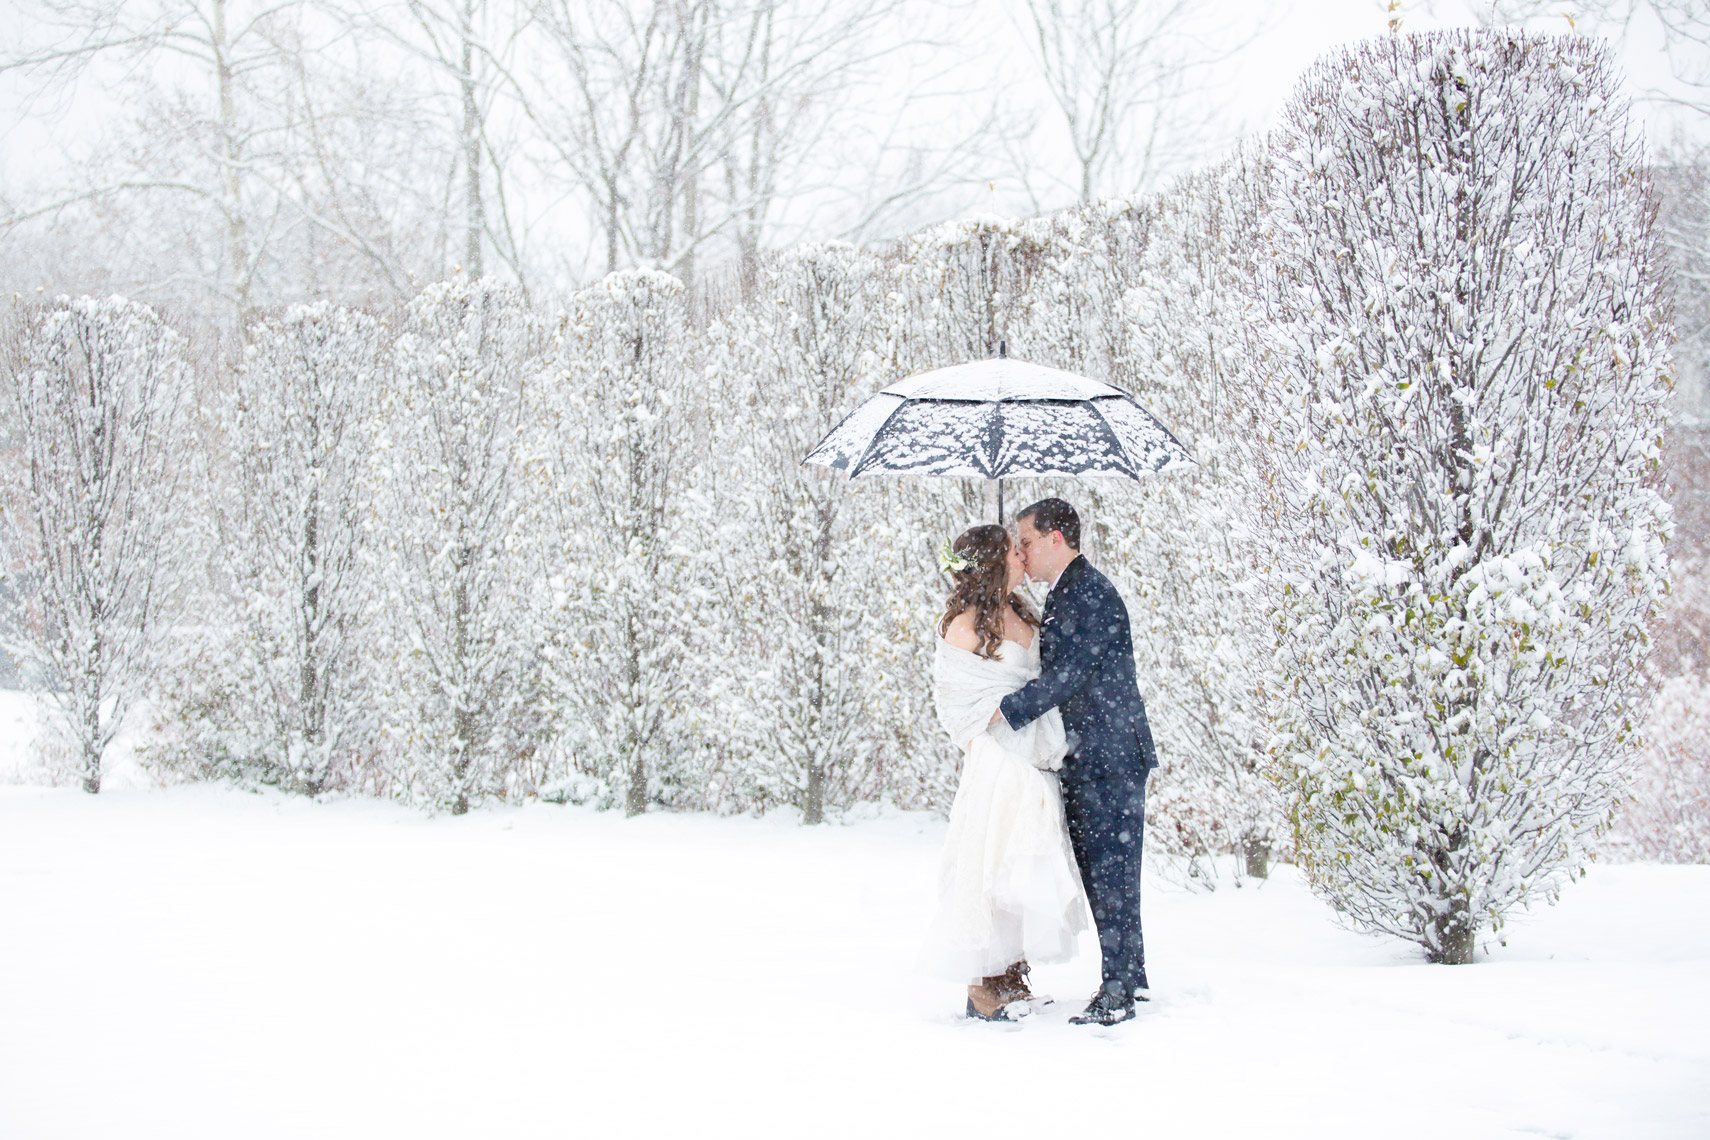 snow-winter-wedding-bride-groom-The-Roundhouse-Beacon-NY-sarma-and-co